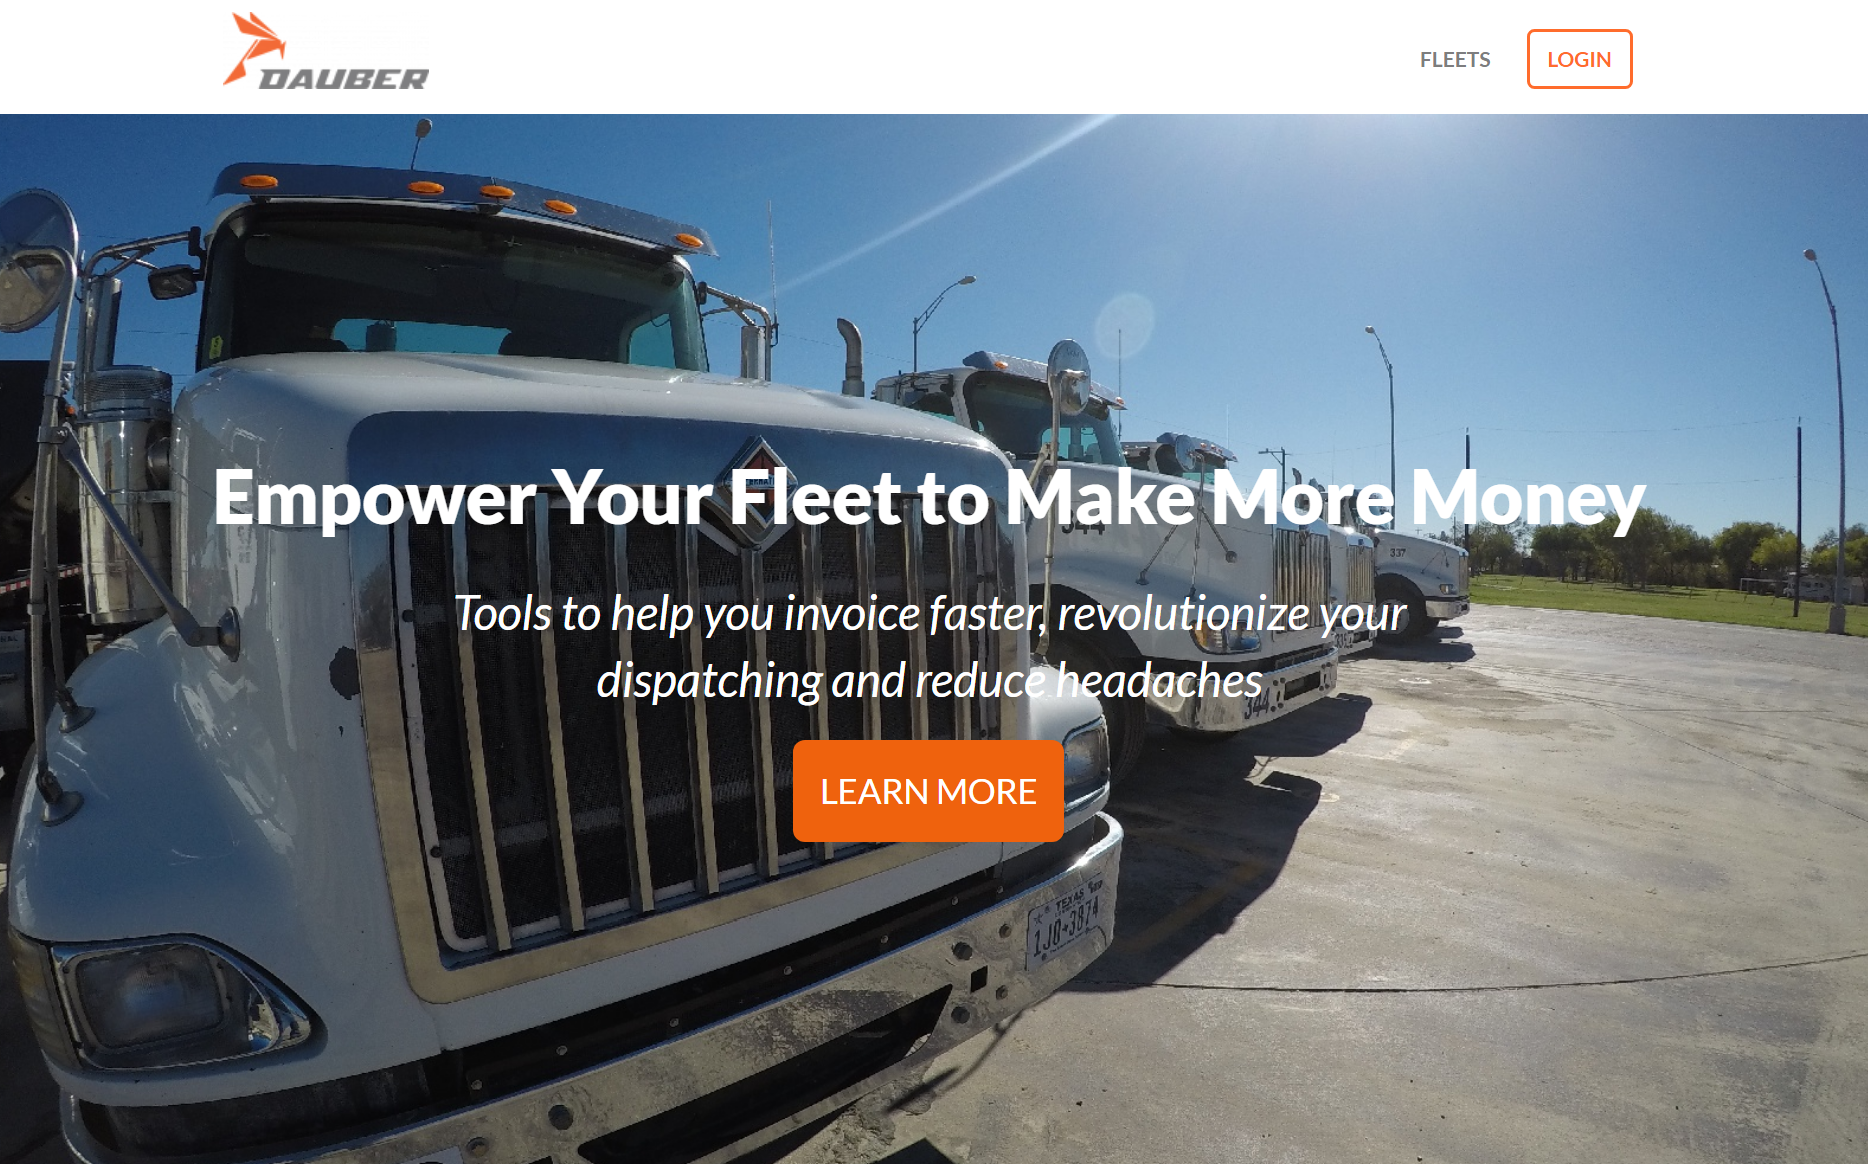 Construction Trucking Loaded with Opportunity for Tech Startup Dauber